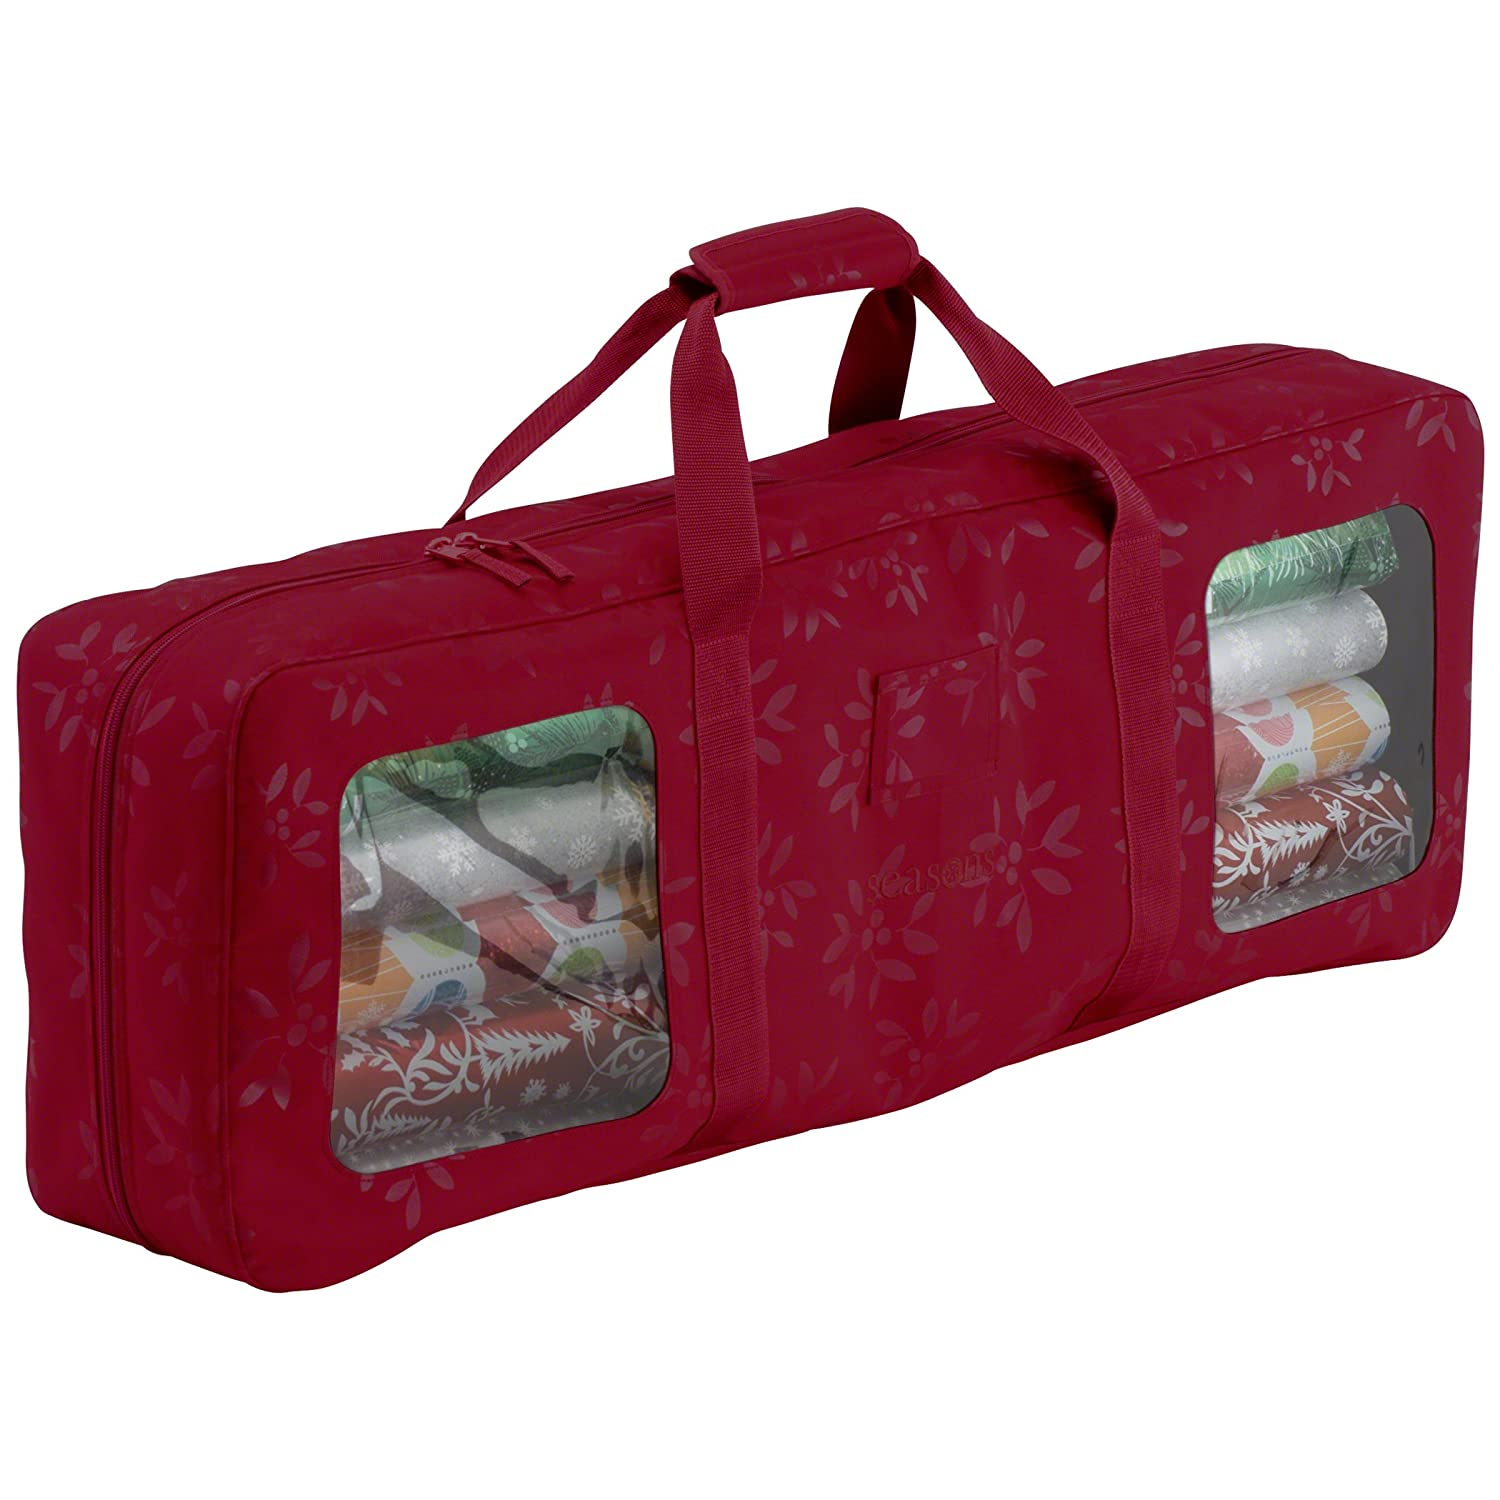 Amazoncom Classic Accessories Seasons Holiday Gift Wrapping Supplies Organizer &